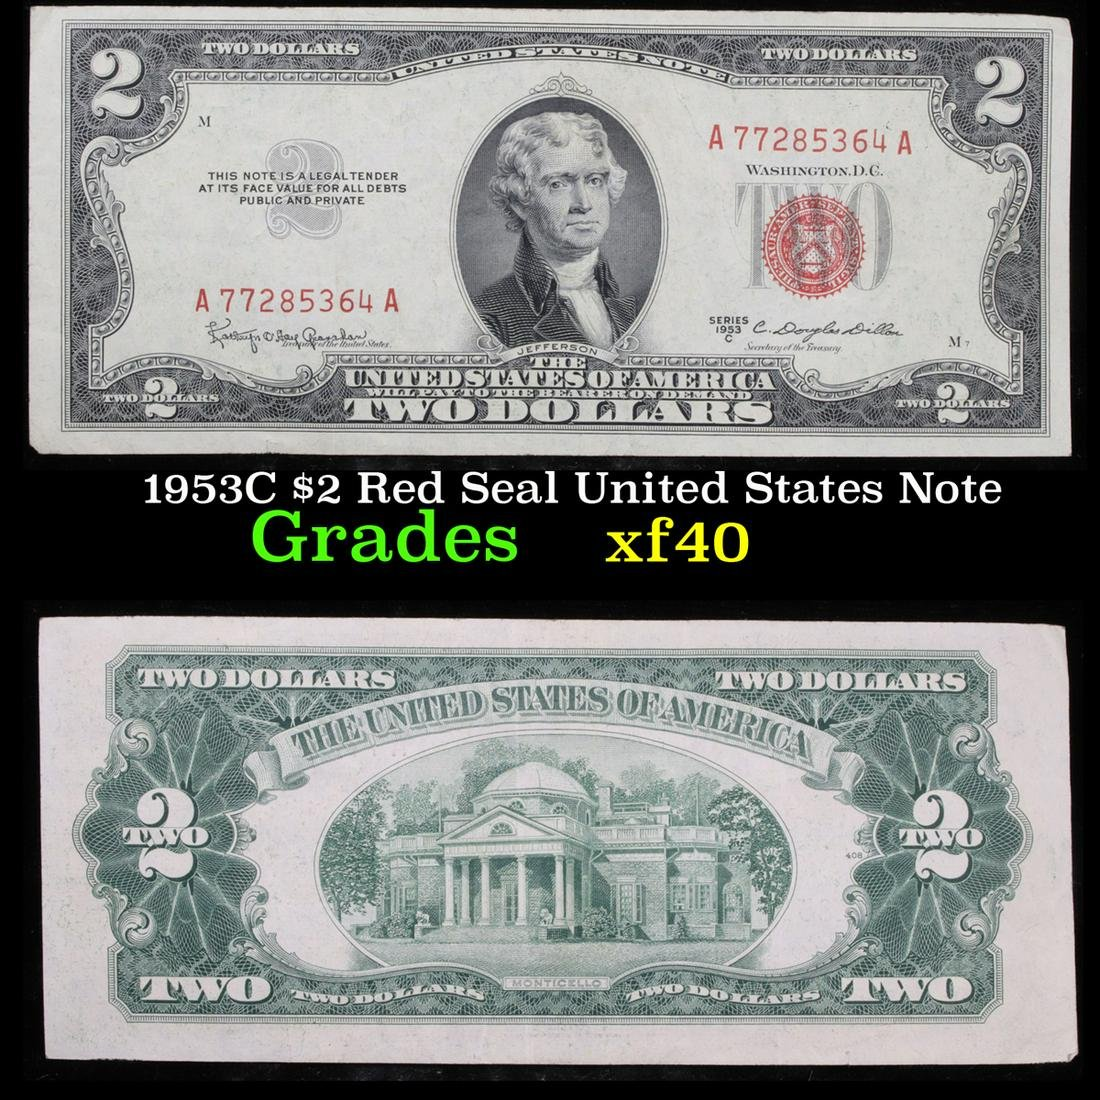 1953C $2 Red Seal United States Note Grades xf